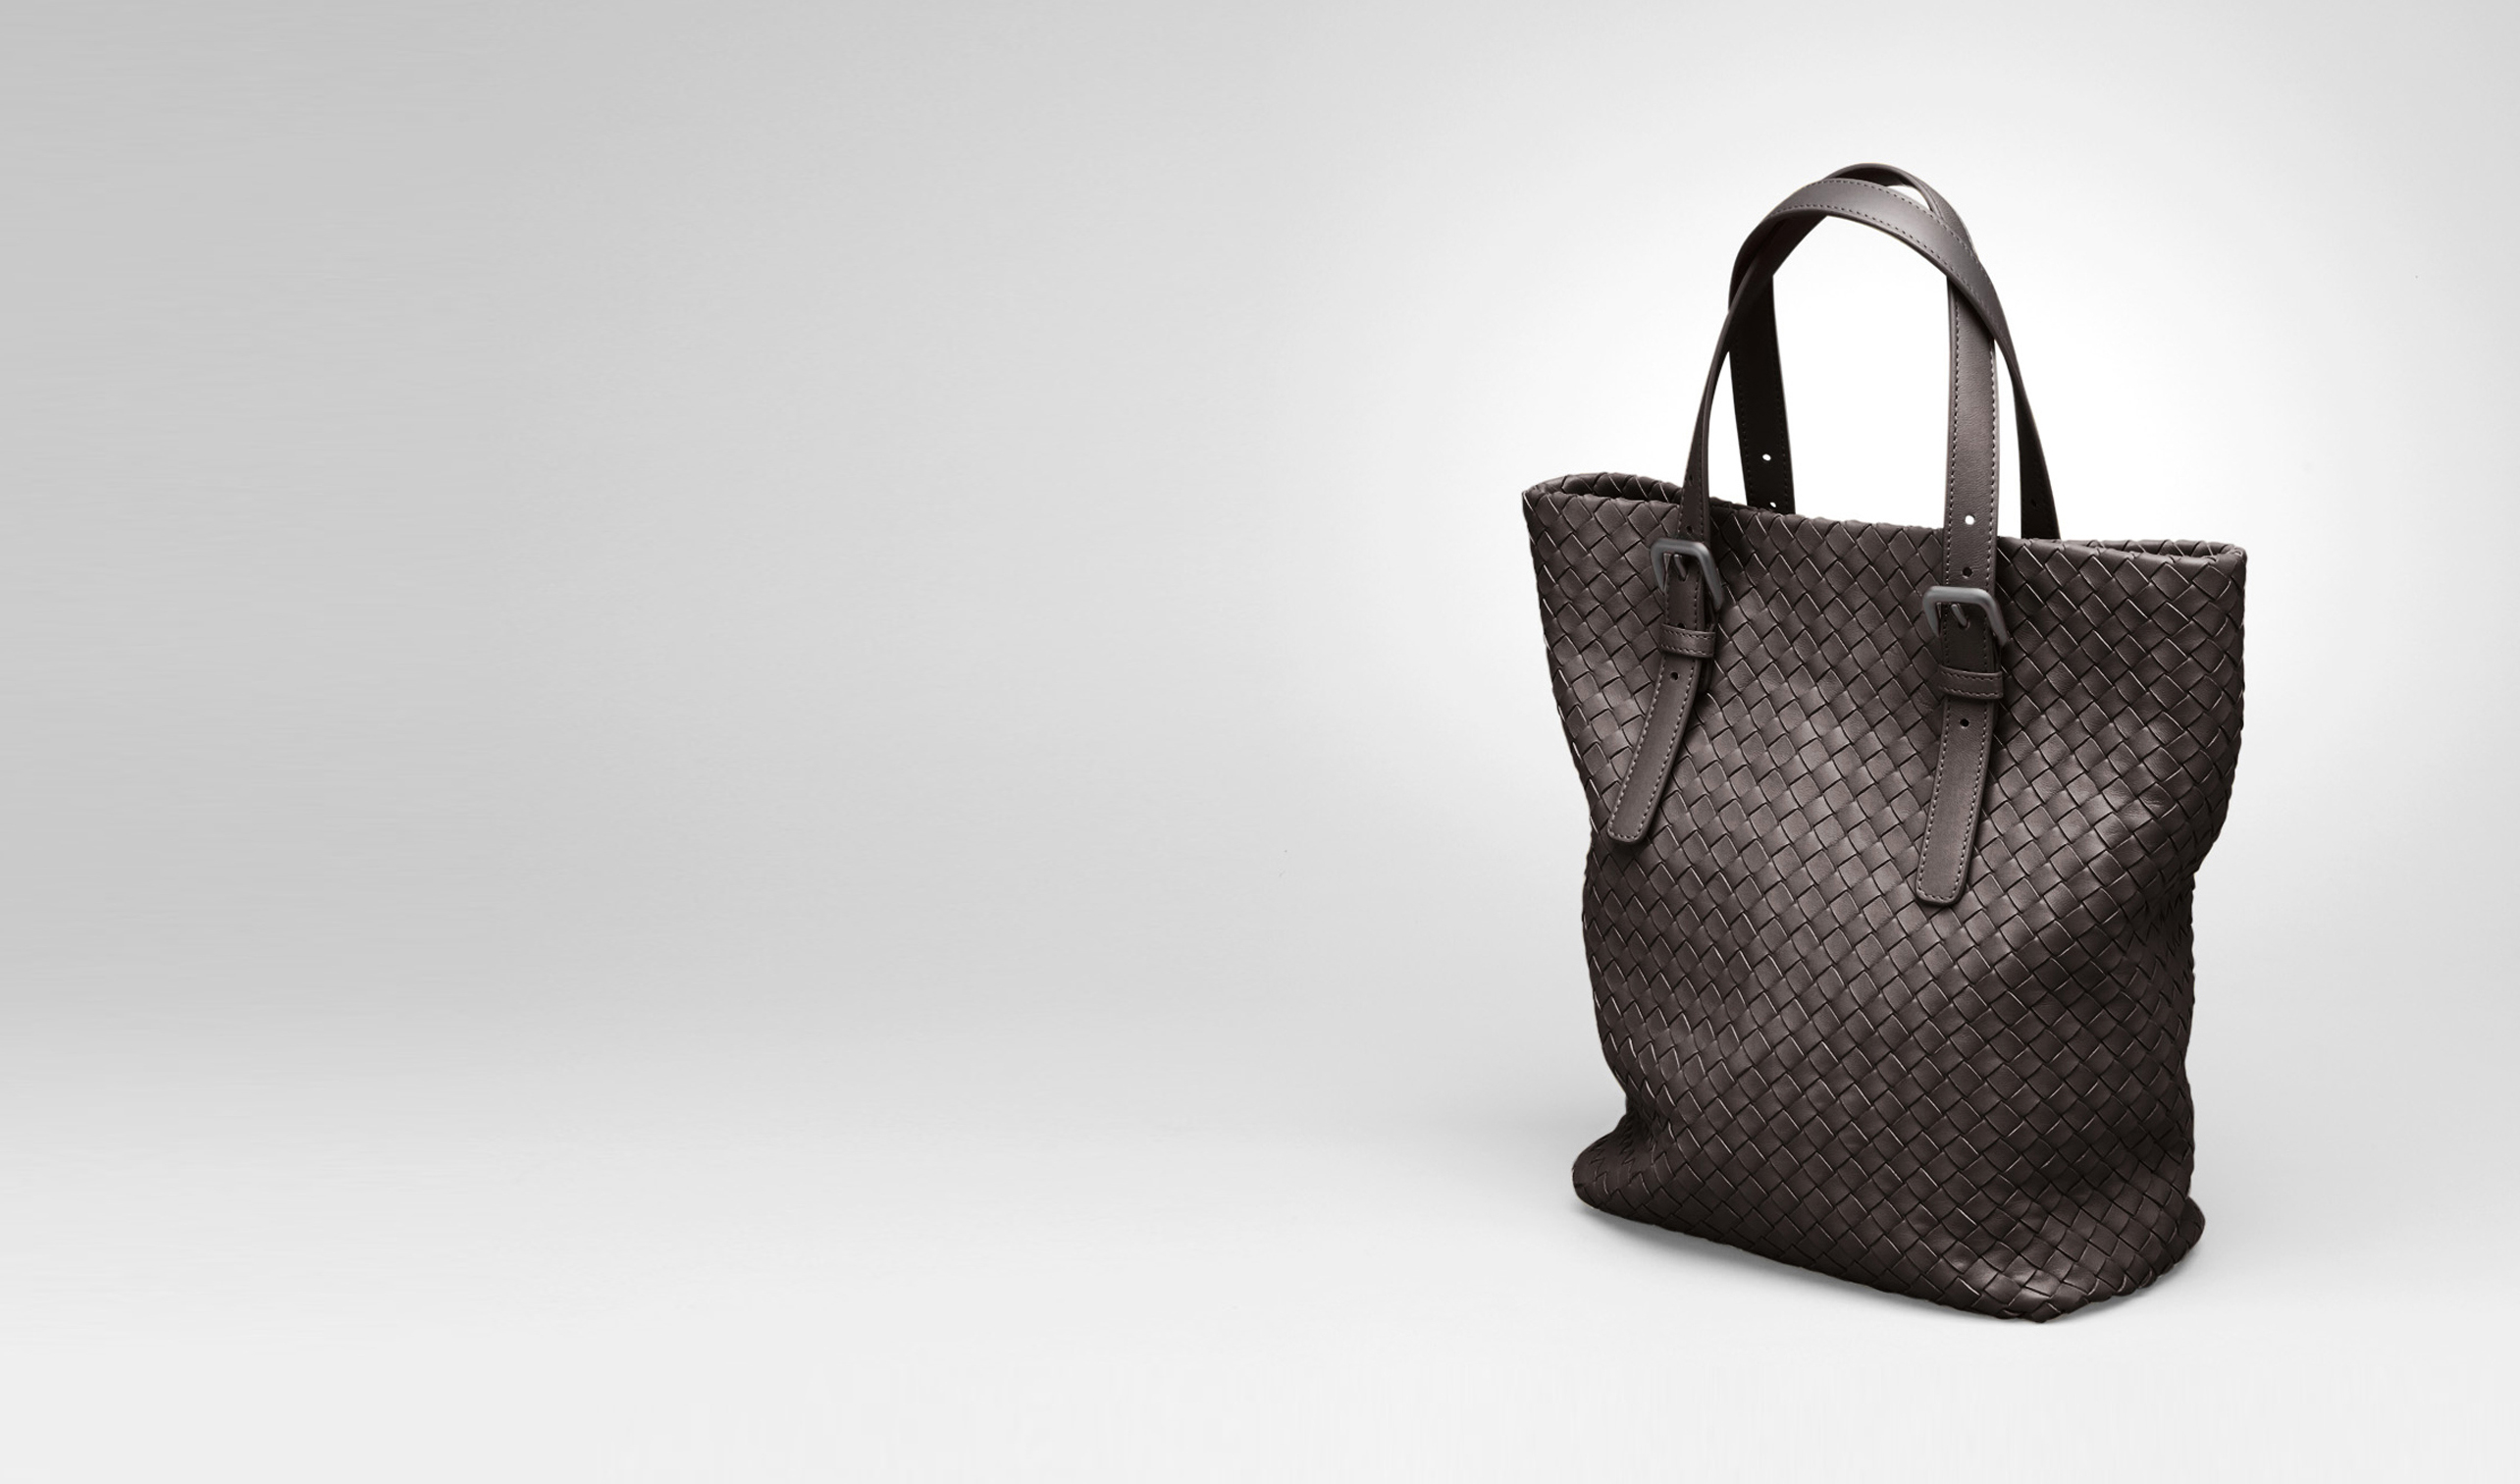 BOTTEGA VENETA Borsa Shopping D Shopper Ebano in Nappa Intrecciata pl